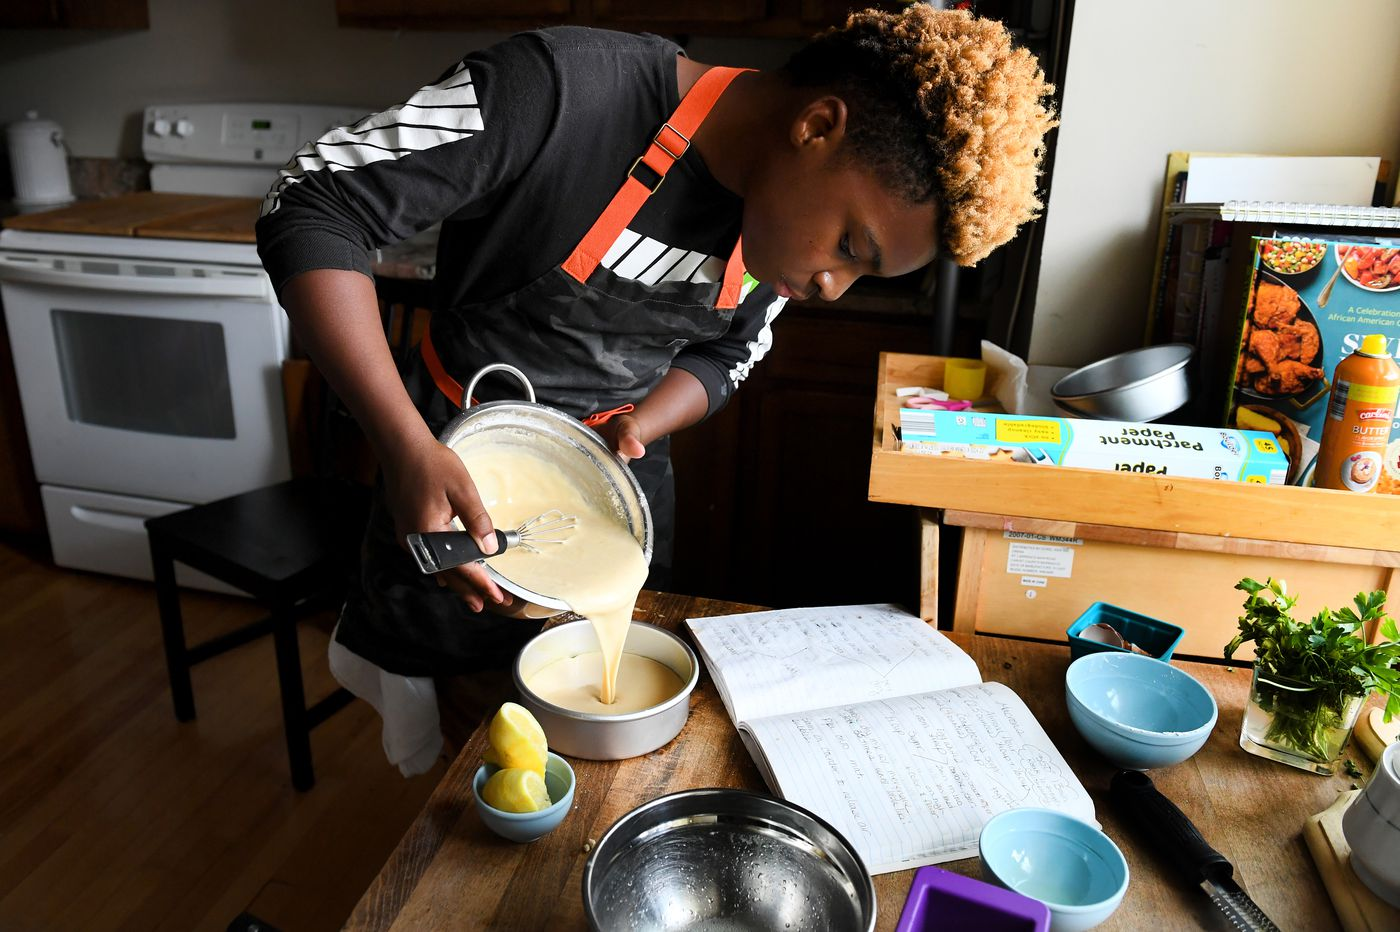 Teen baker's sweet recipes help others